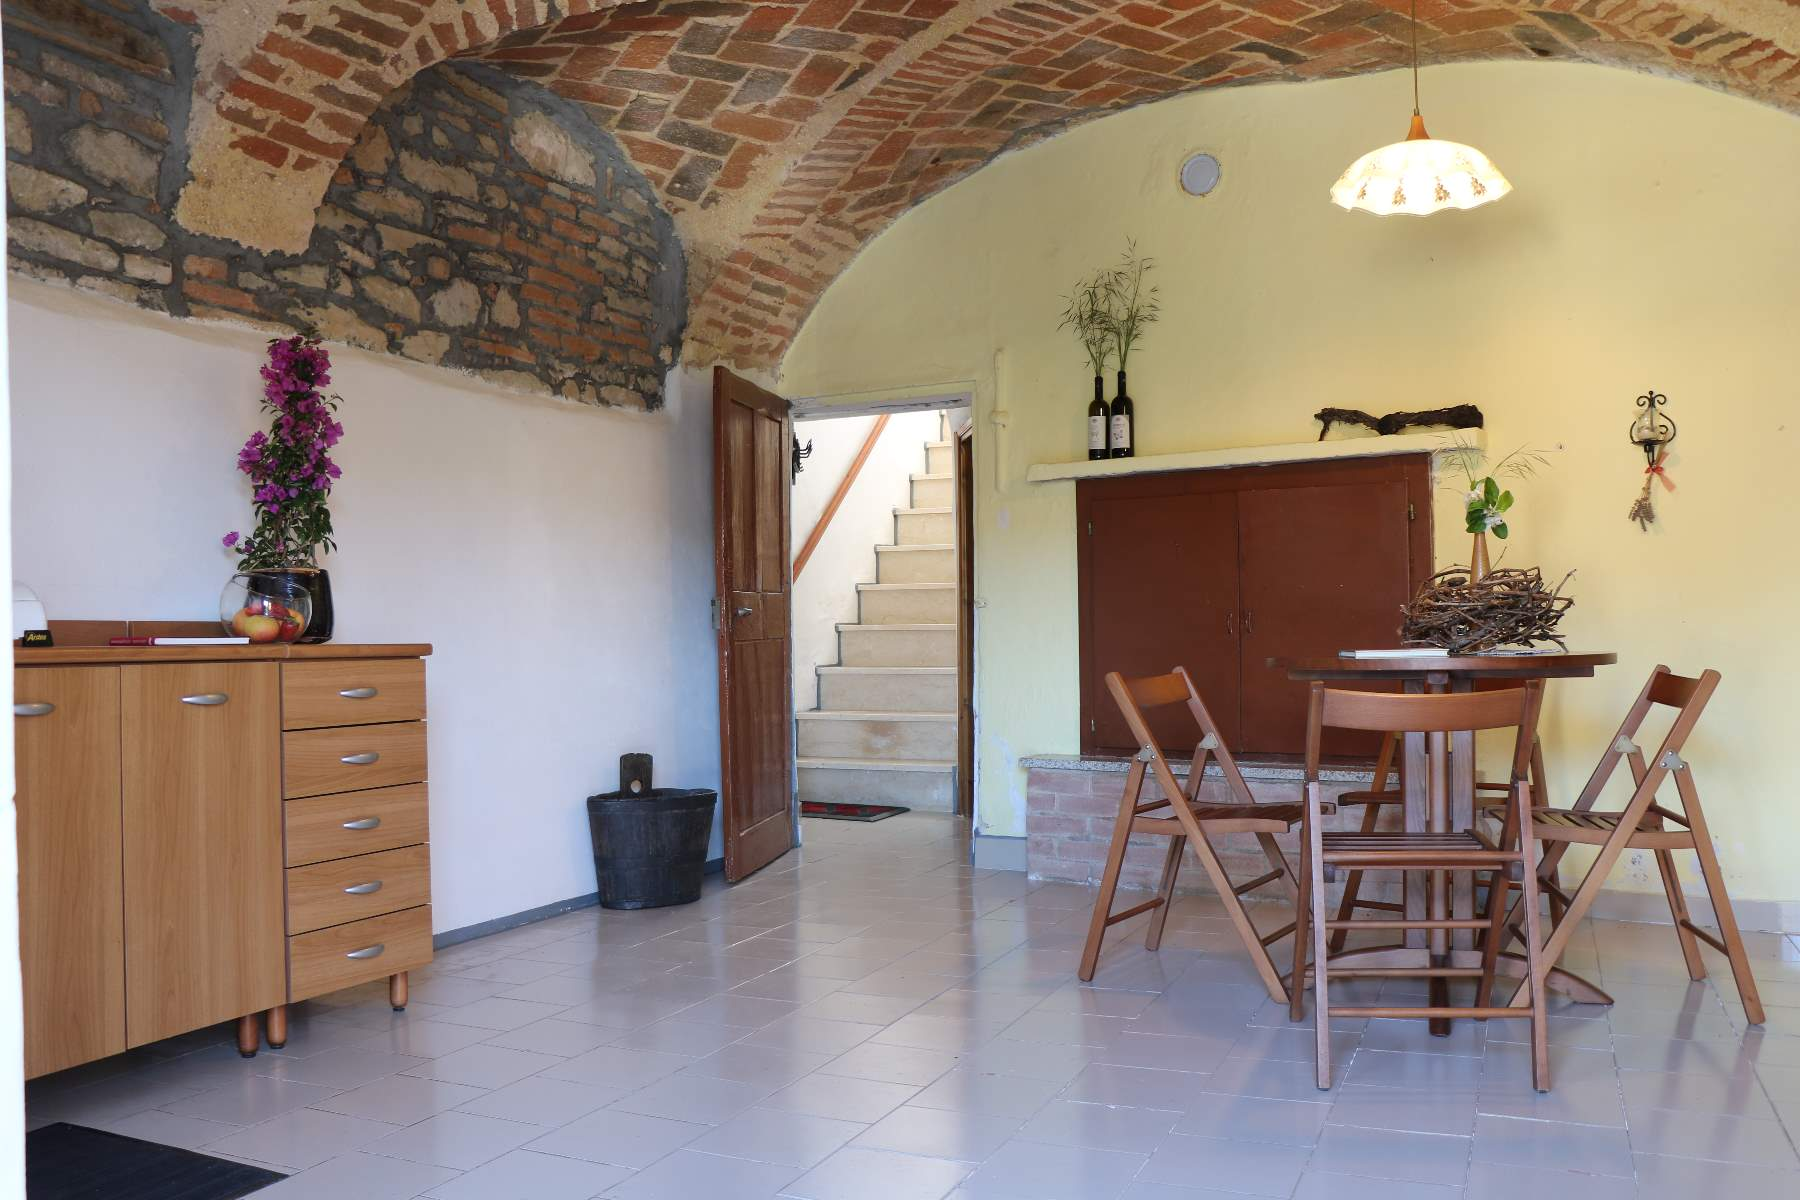 Casa Re, Piemonte - Ferienwohnung | Holiday Apartment | Appartamento Vacanze